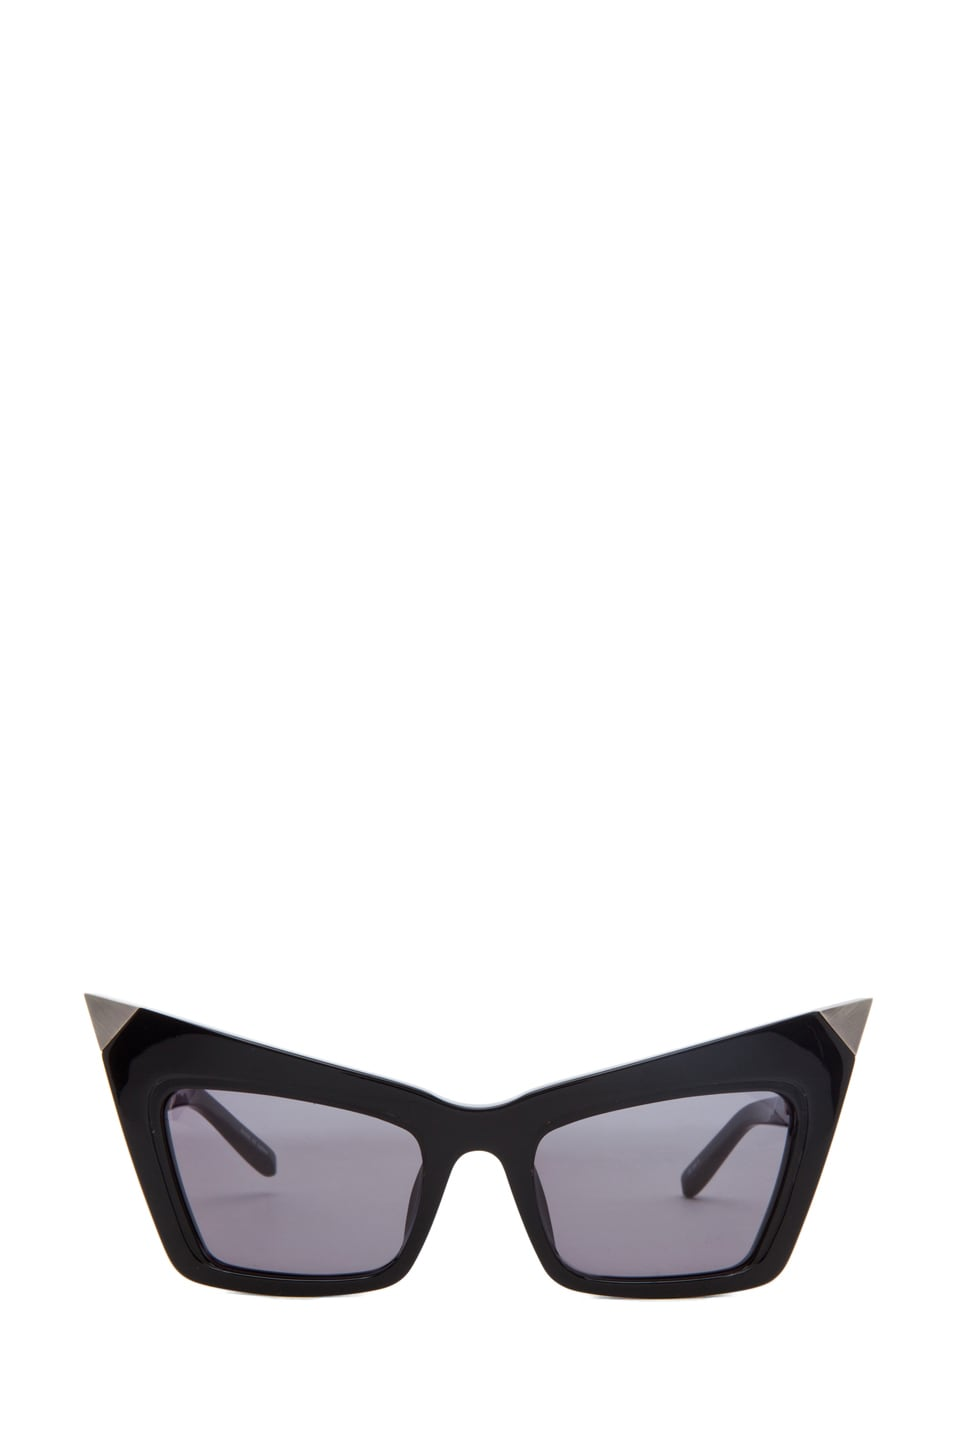 Image 1 of Alexander Wang Cat Eye Sunglasses/Silver in Black